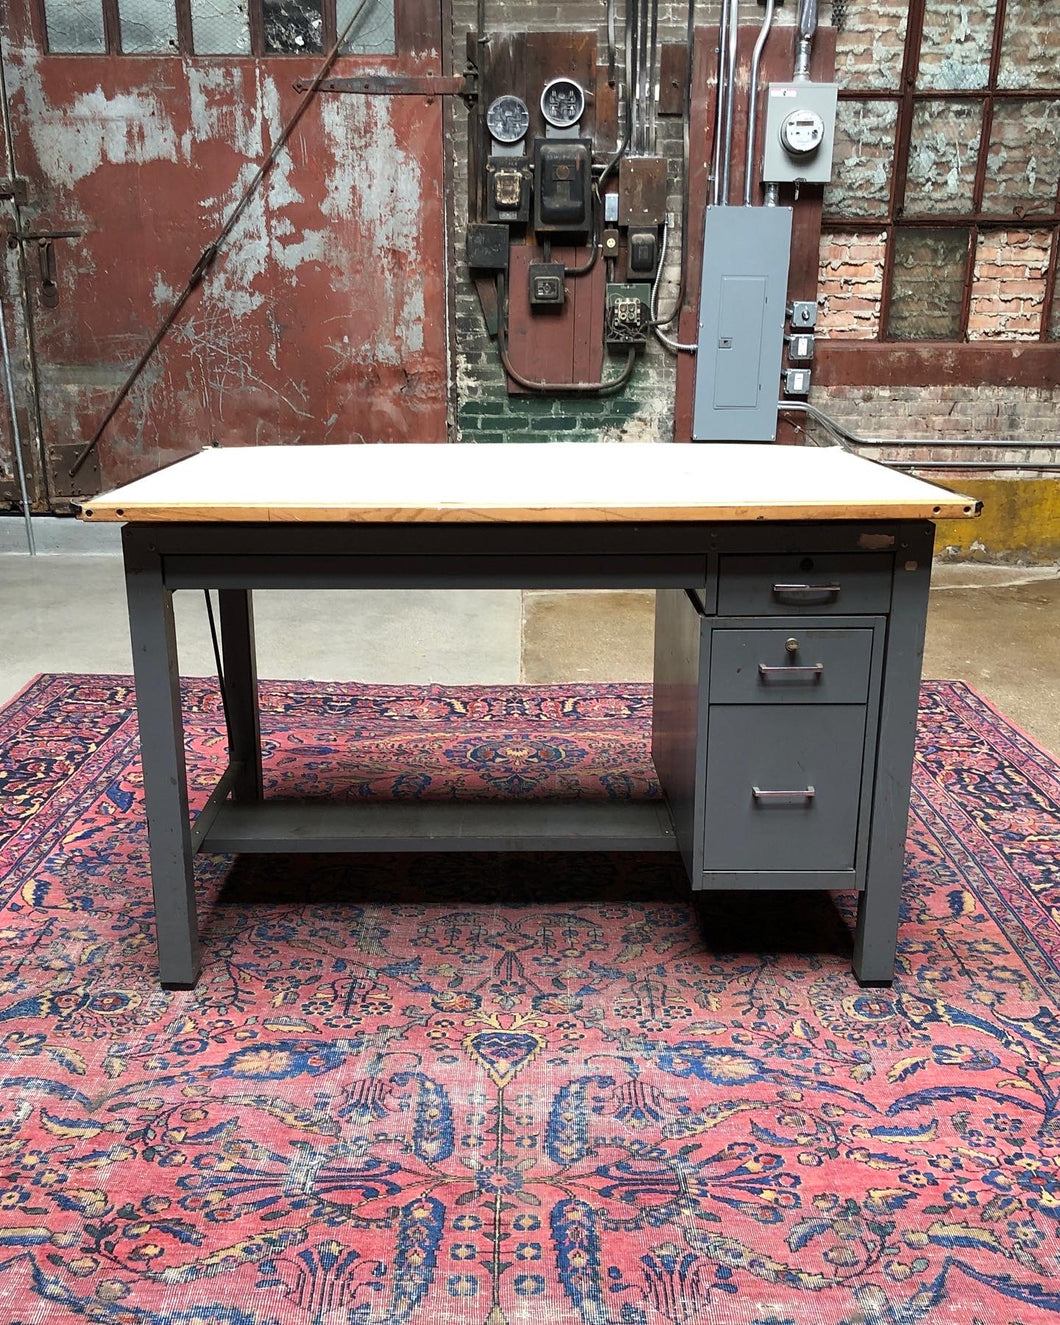 Adjustable/Lockable Drafting Desk w/ Wood Surface